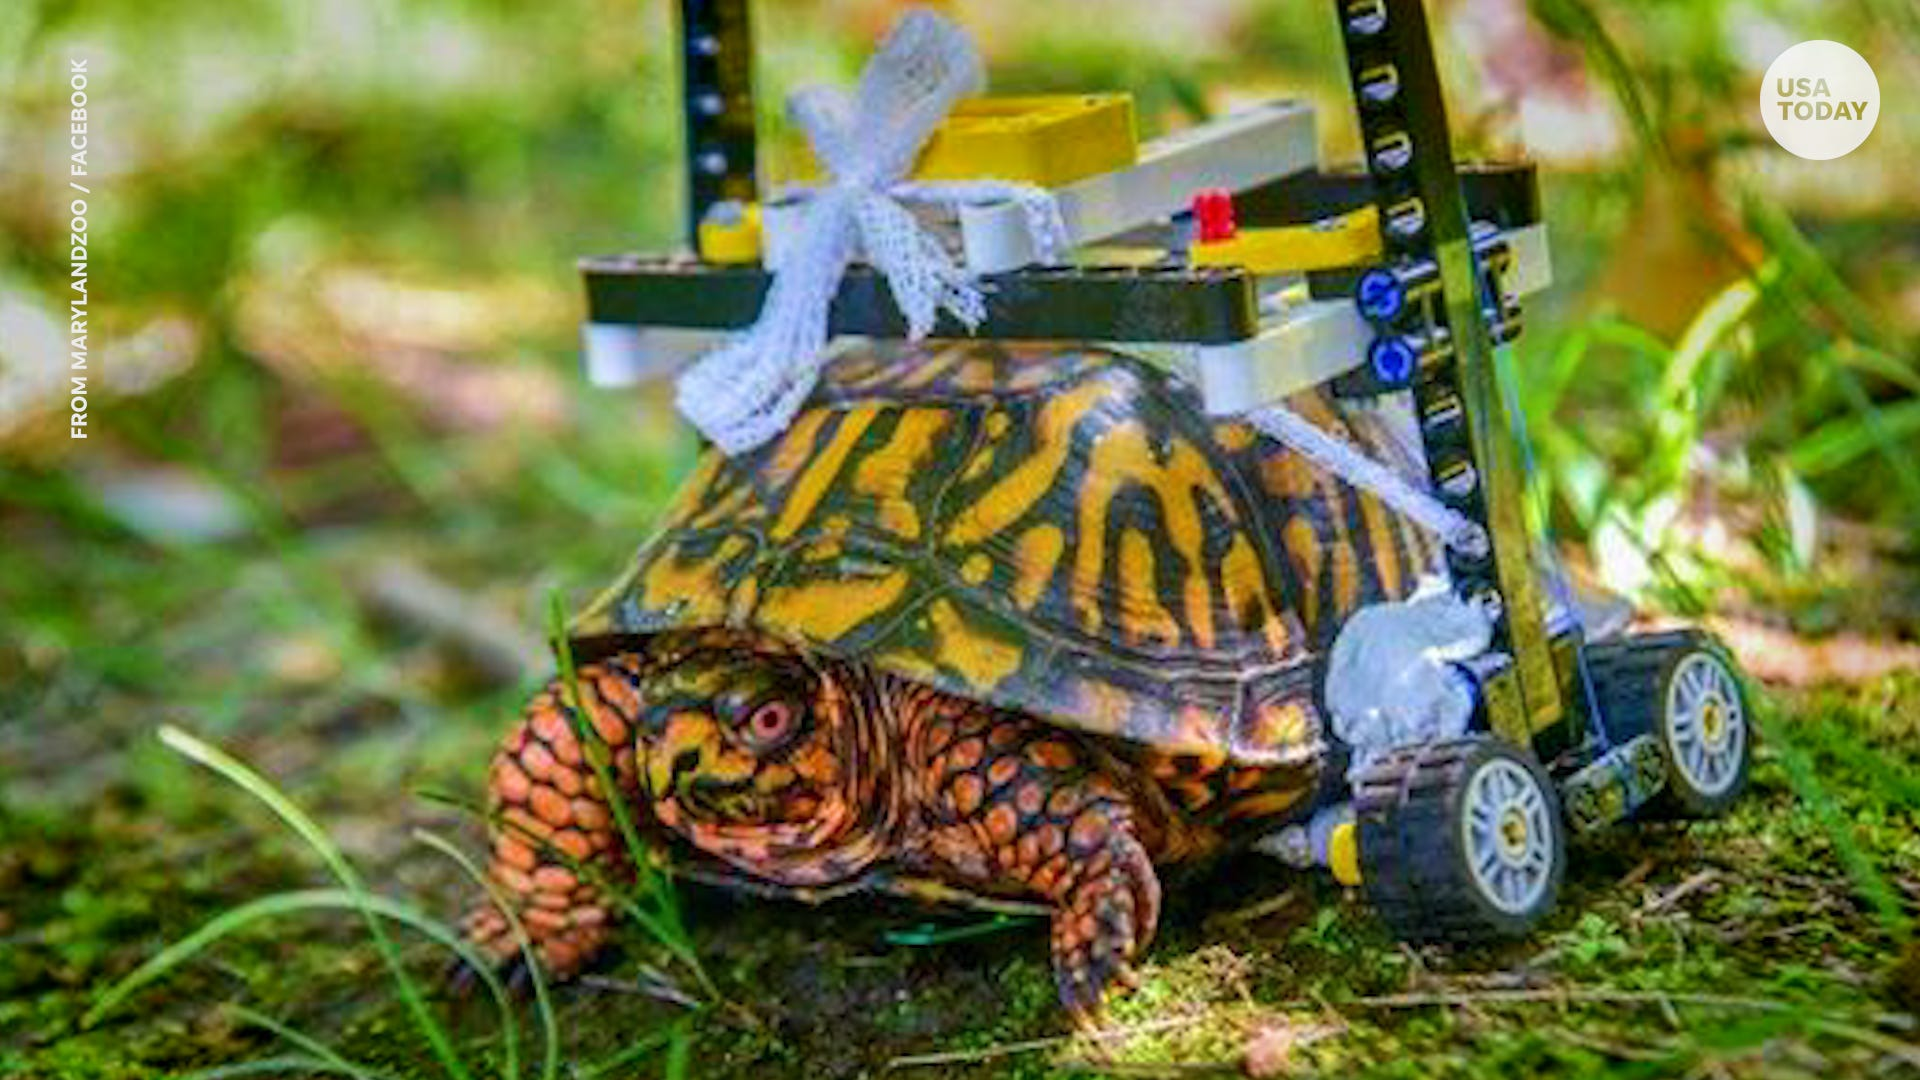 Injured turtle with Lego wheelchair recovers and is released back to wild